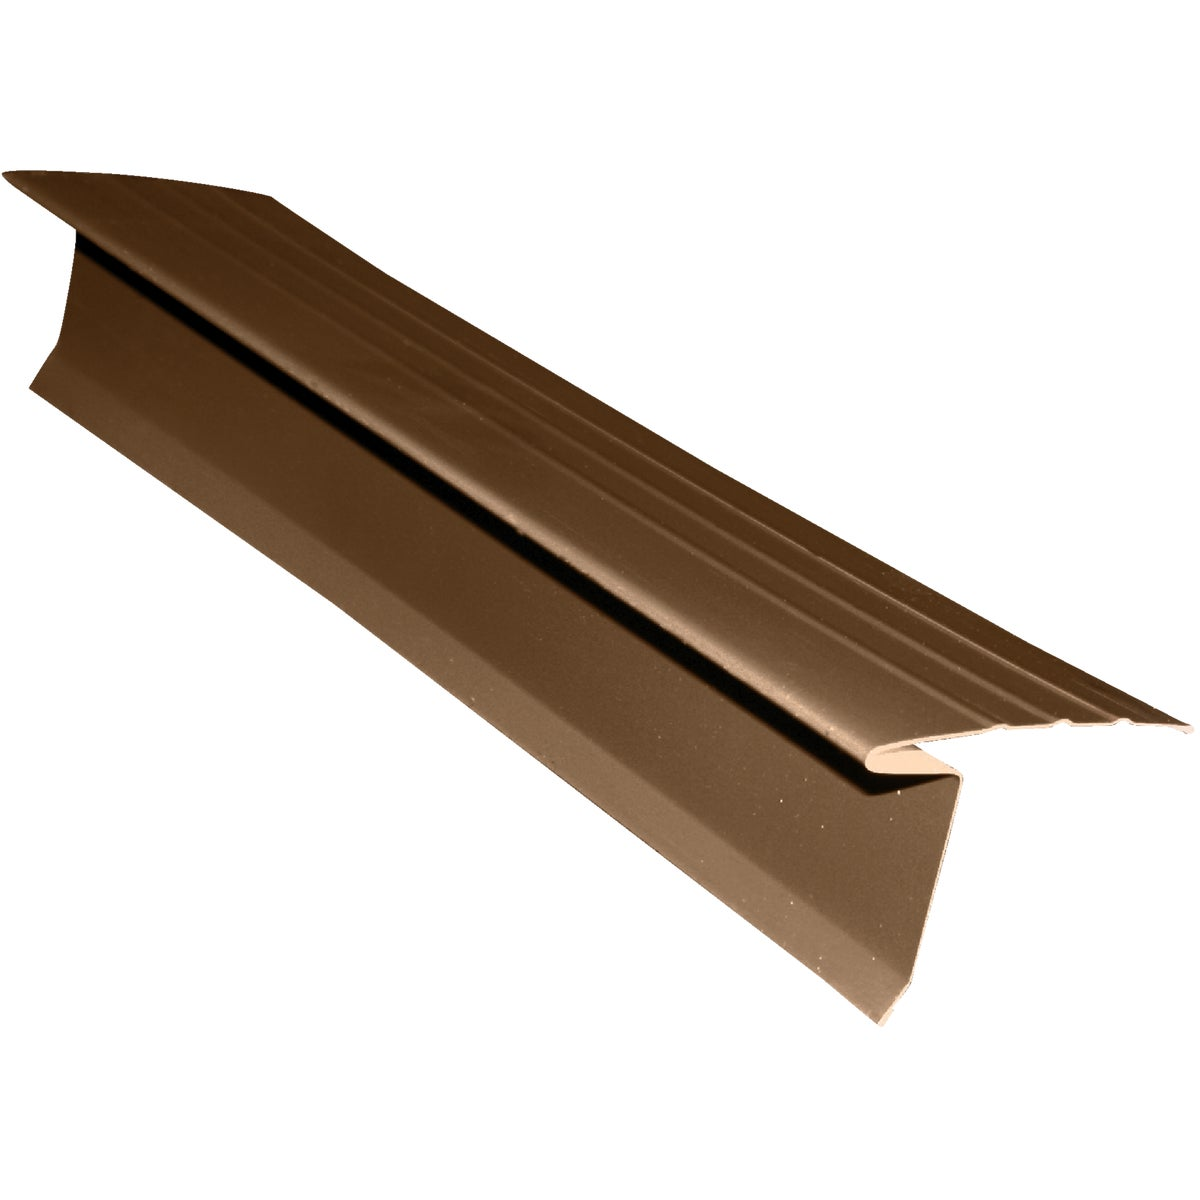 "6""STYLE LL BRN ROOF EDGE - 32690-AJ50 by Klauer Mfg Co"